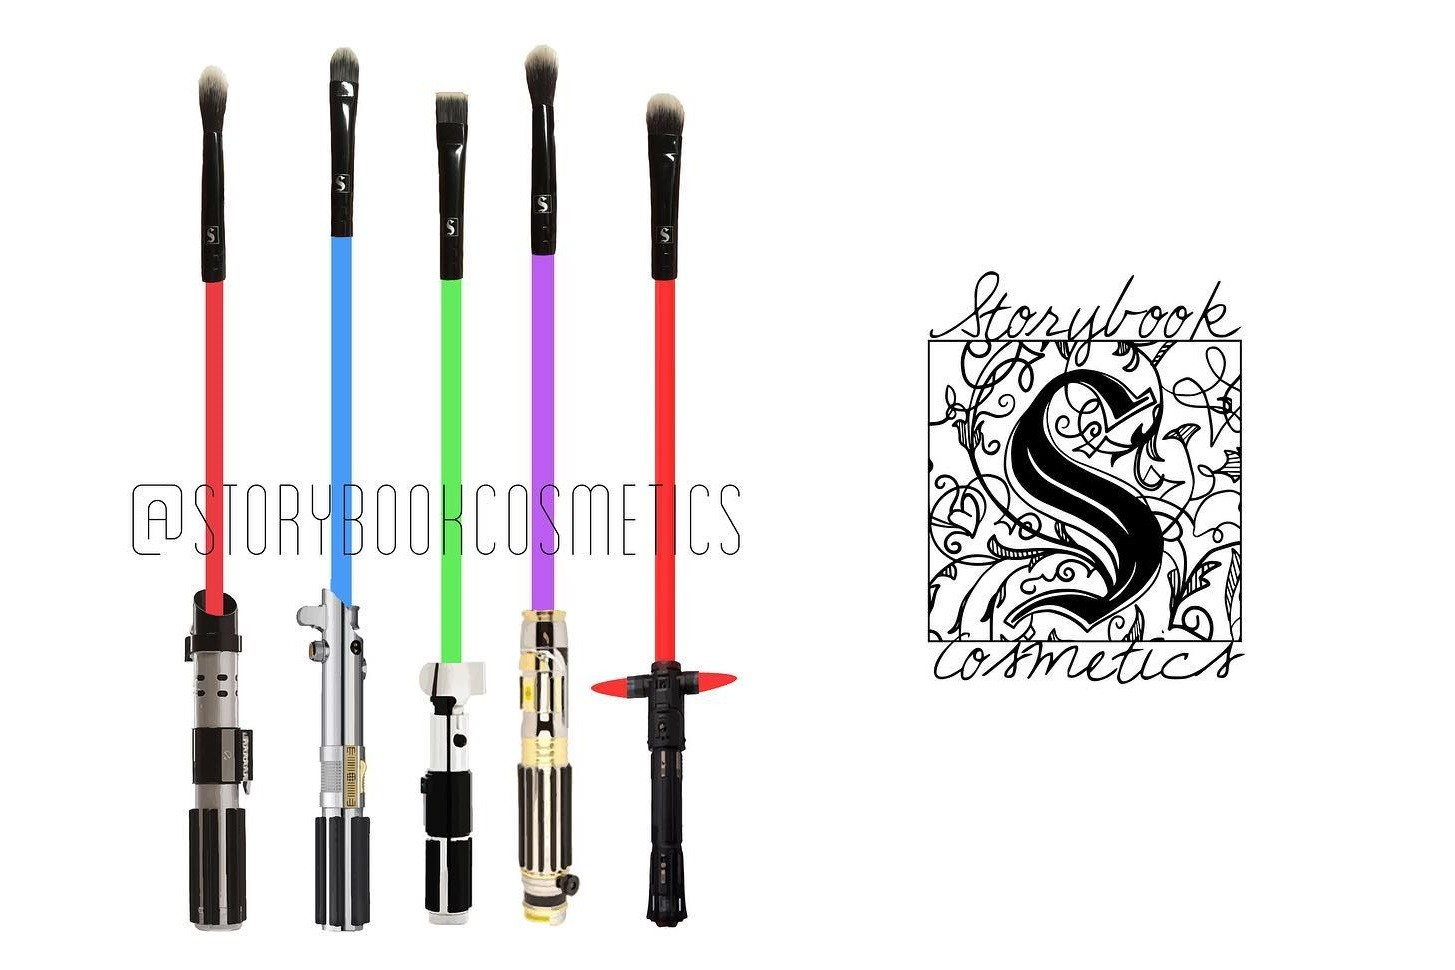 Storybook Cosmetics Lightsaber makeup brushes